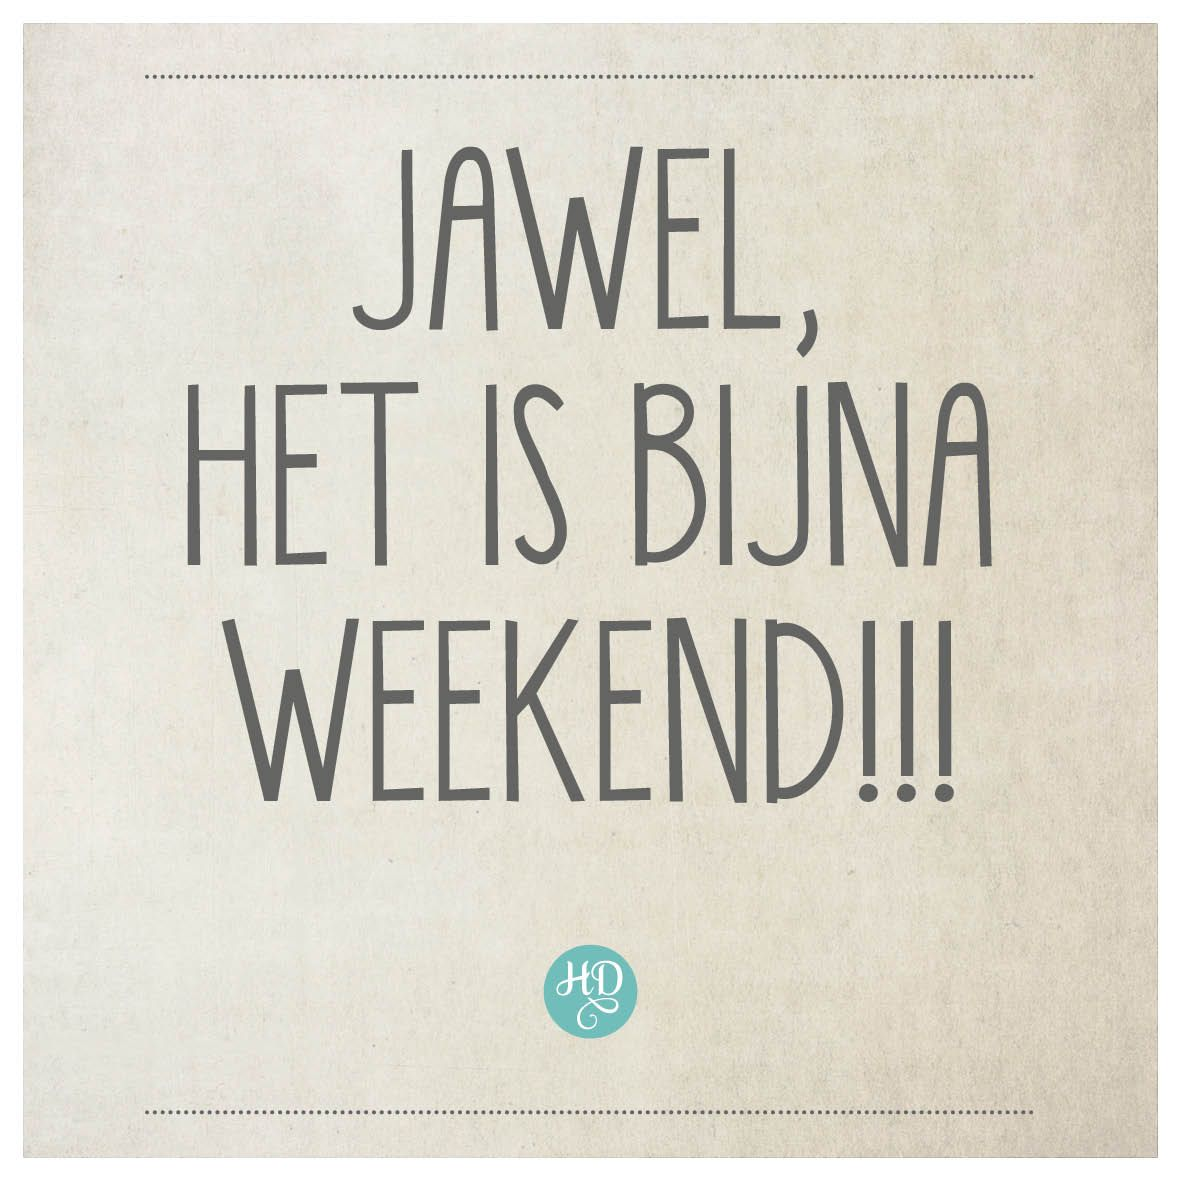 bijna weekend spreuken Jawel, het is bijna weekend! : D | #iLike Quotes   Weekend quotes  bijna weekend spreuken